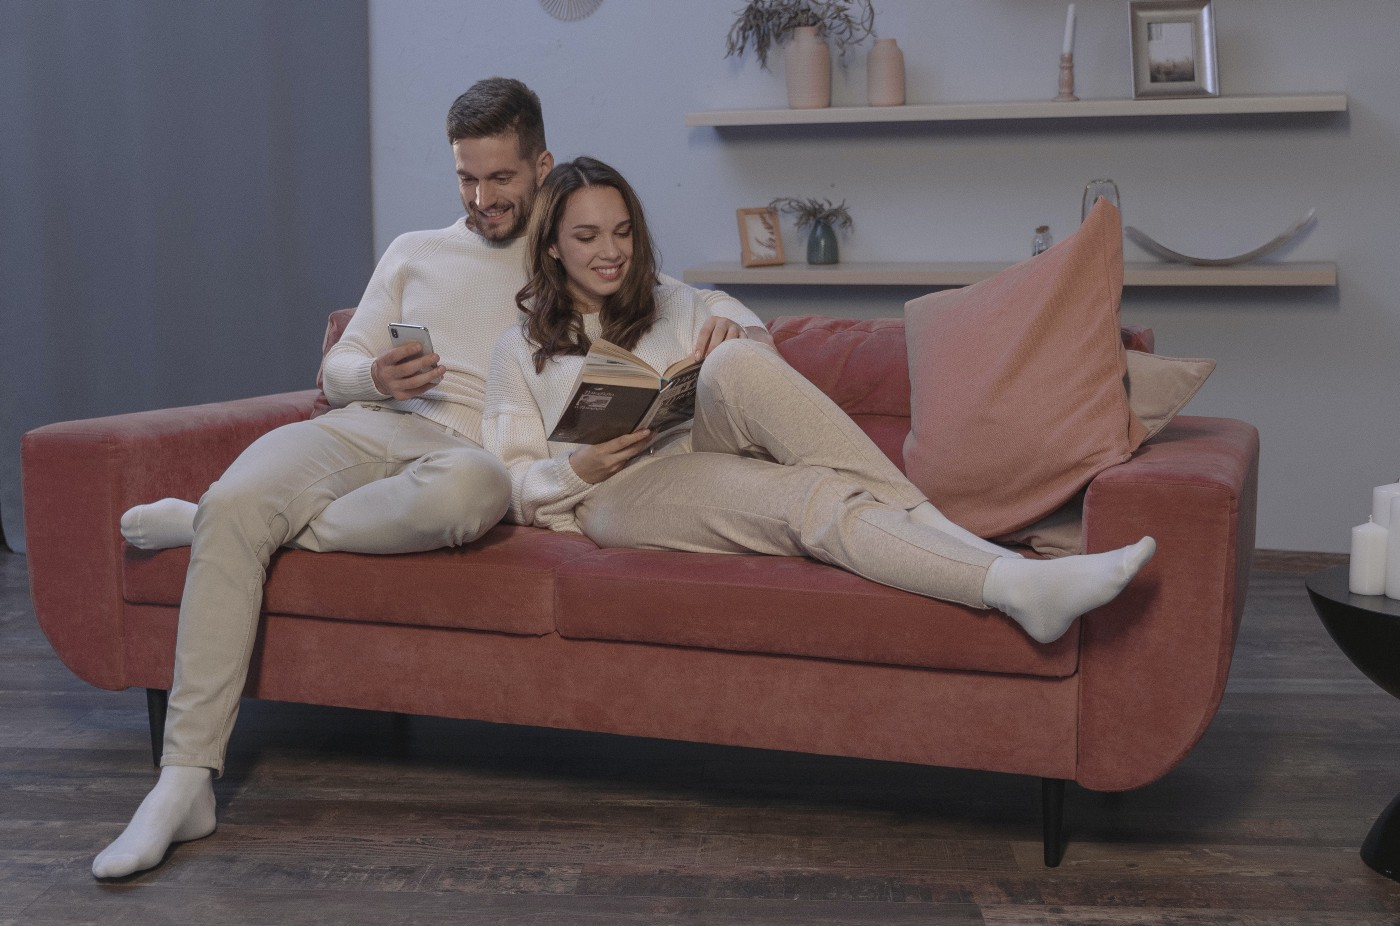 A Happy heterosexual Couple Sitting on a Couch. The man is on his smart phone and the woman is reading a book.